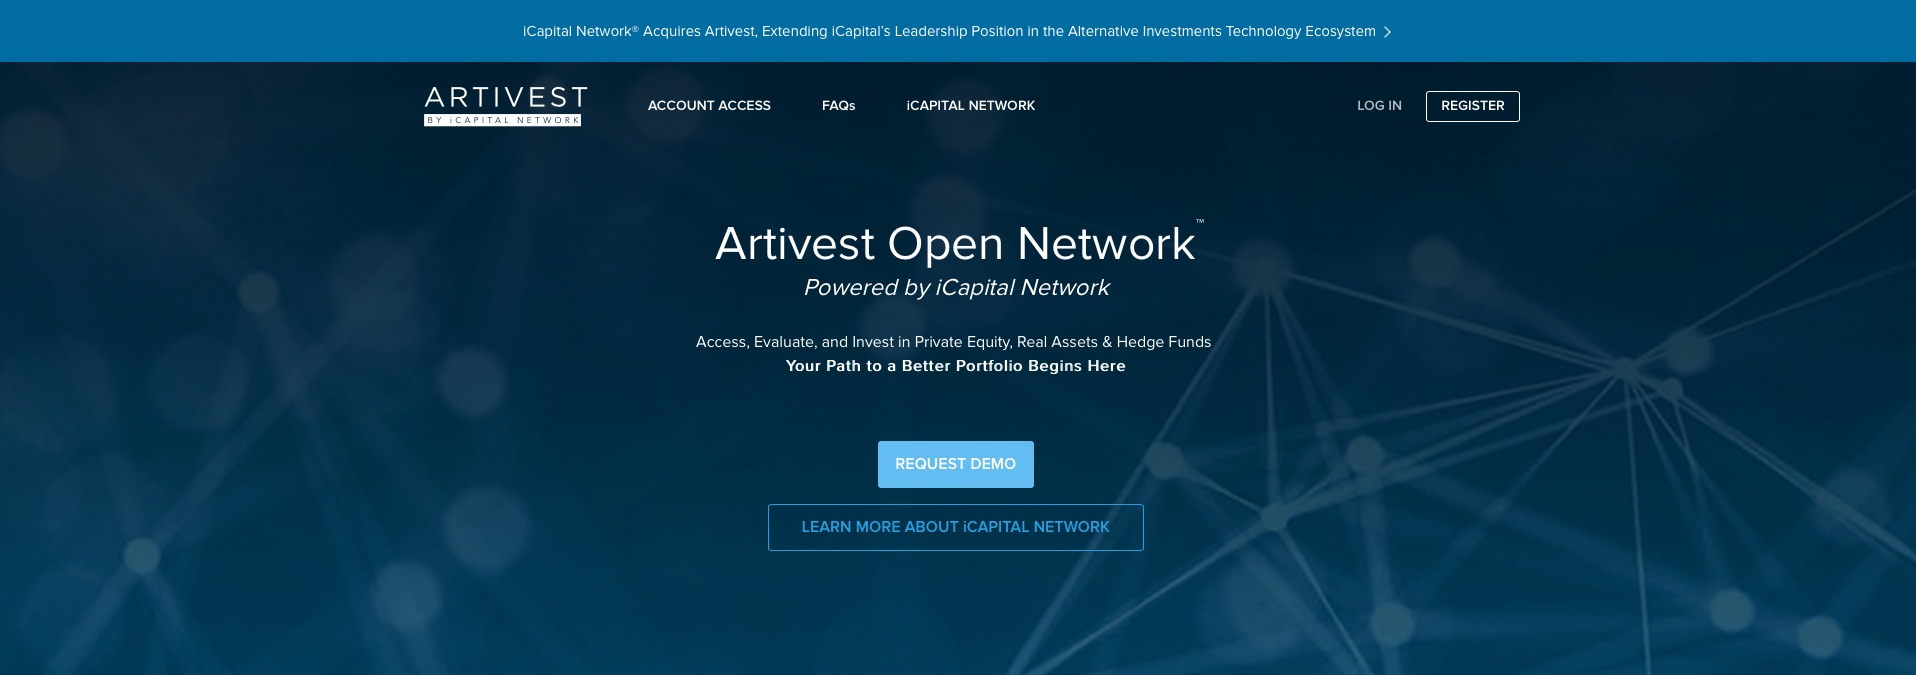 iCapital Closes Acquisition of Alternative Investment Platform Artivest